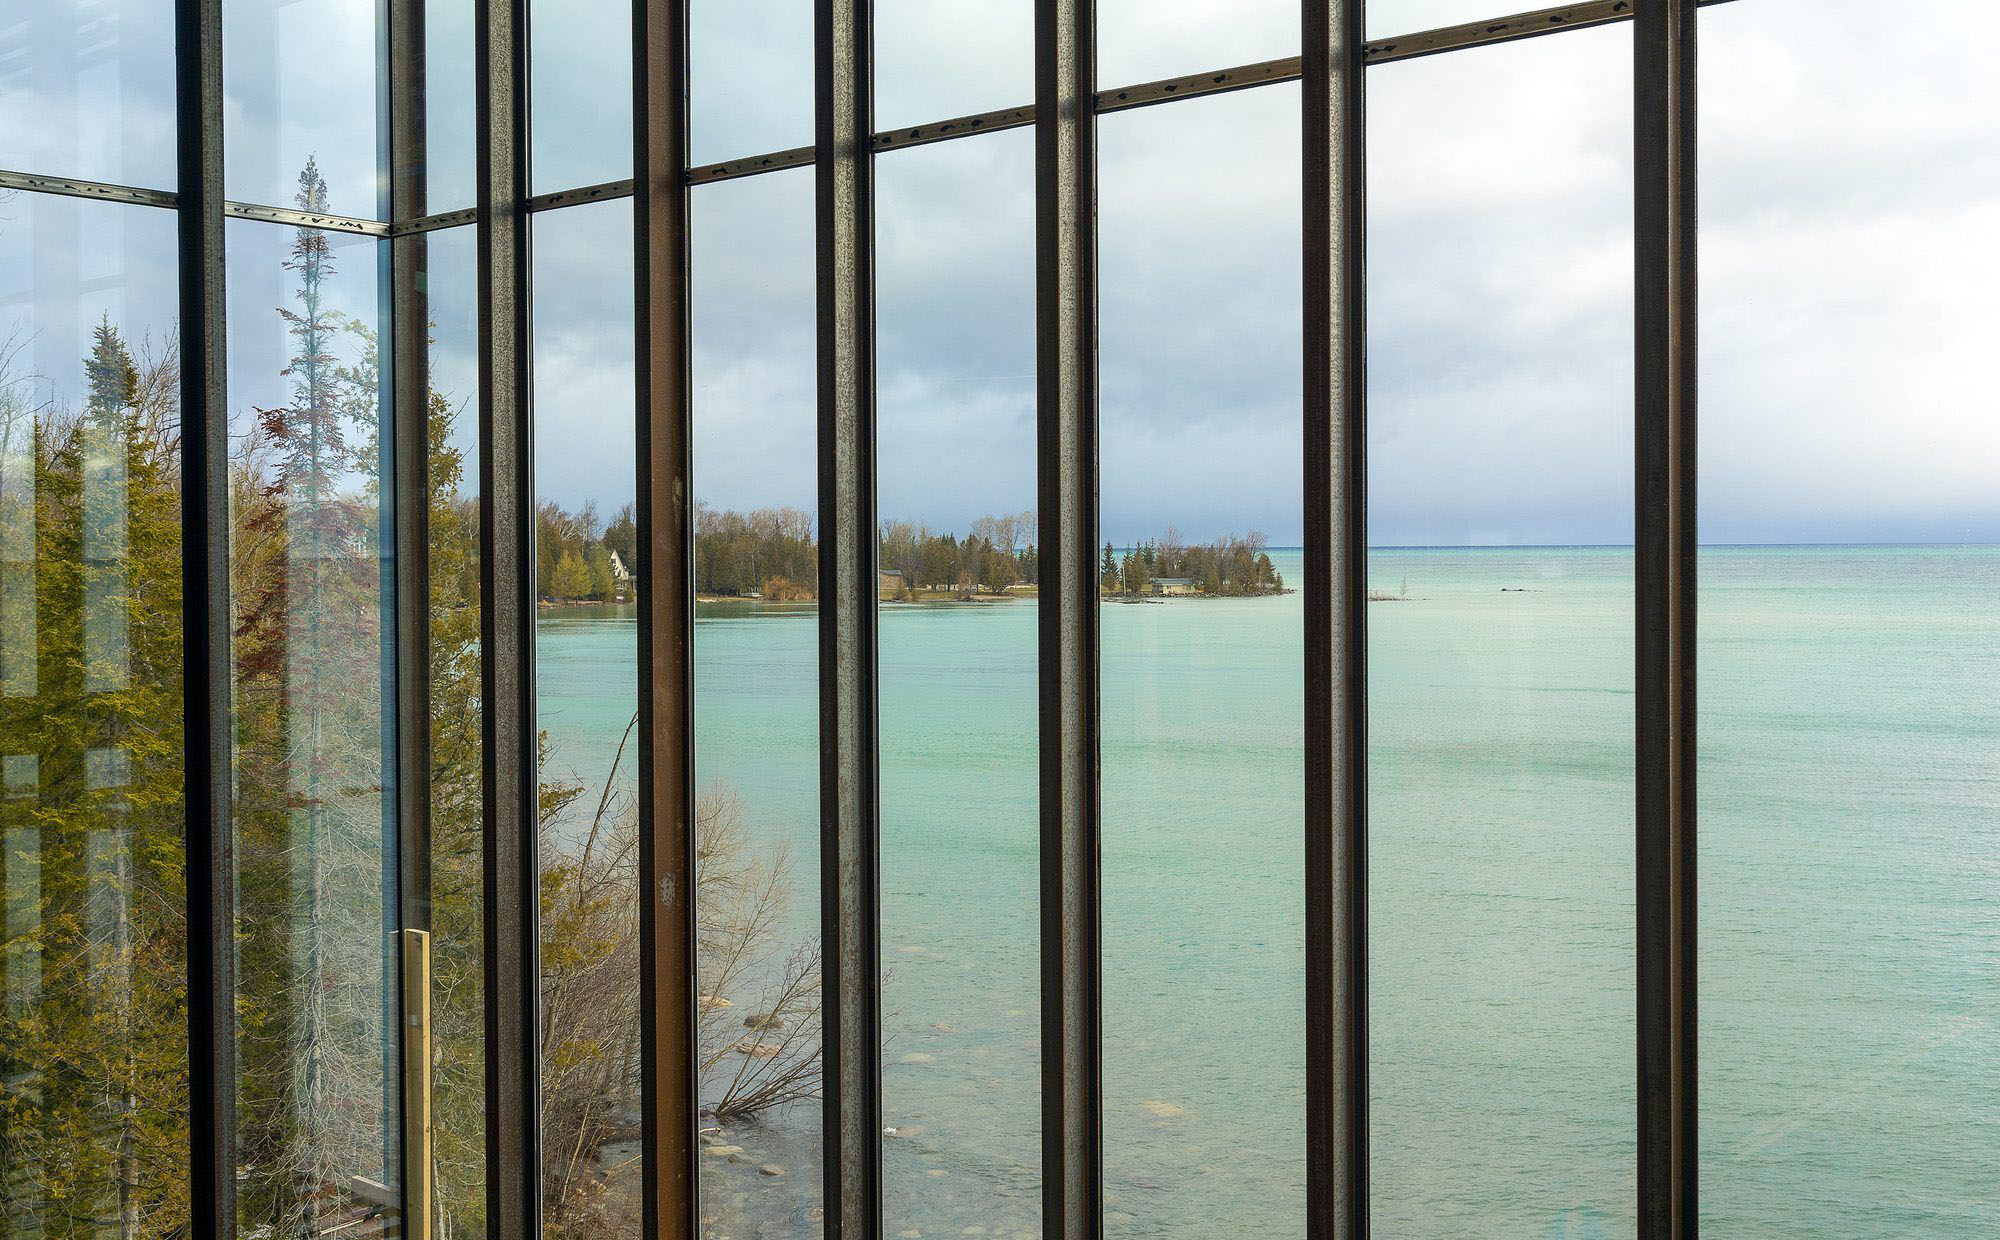 Modern windows with a beautiful water view. Closeup view through the windows.